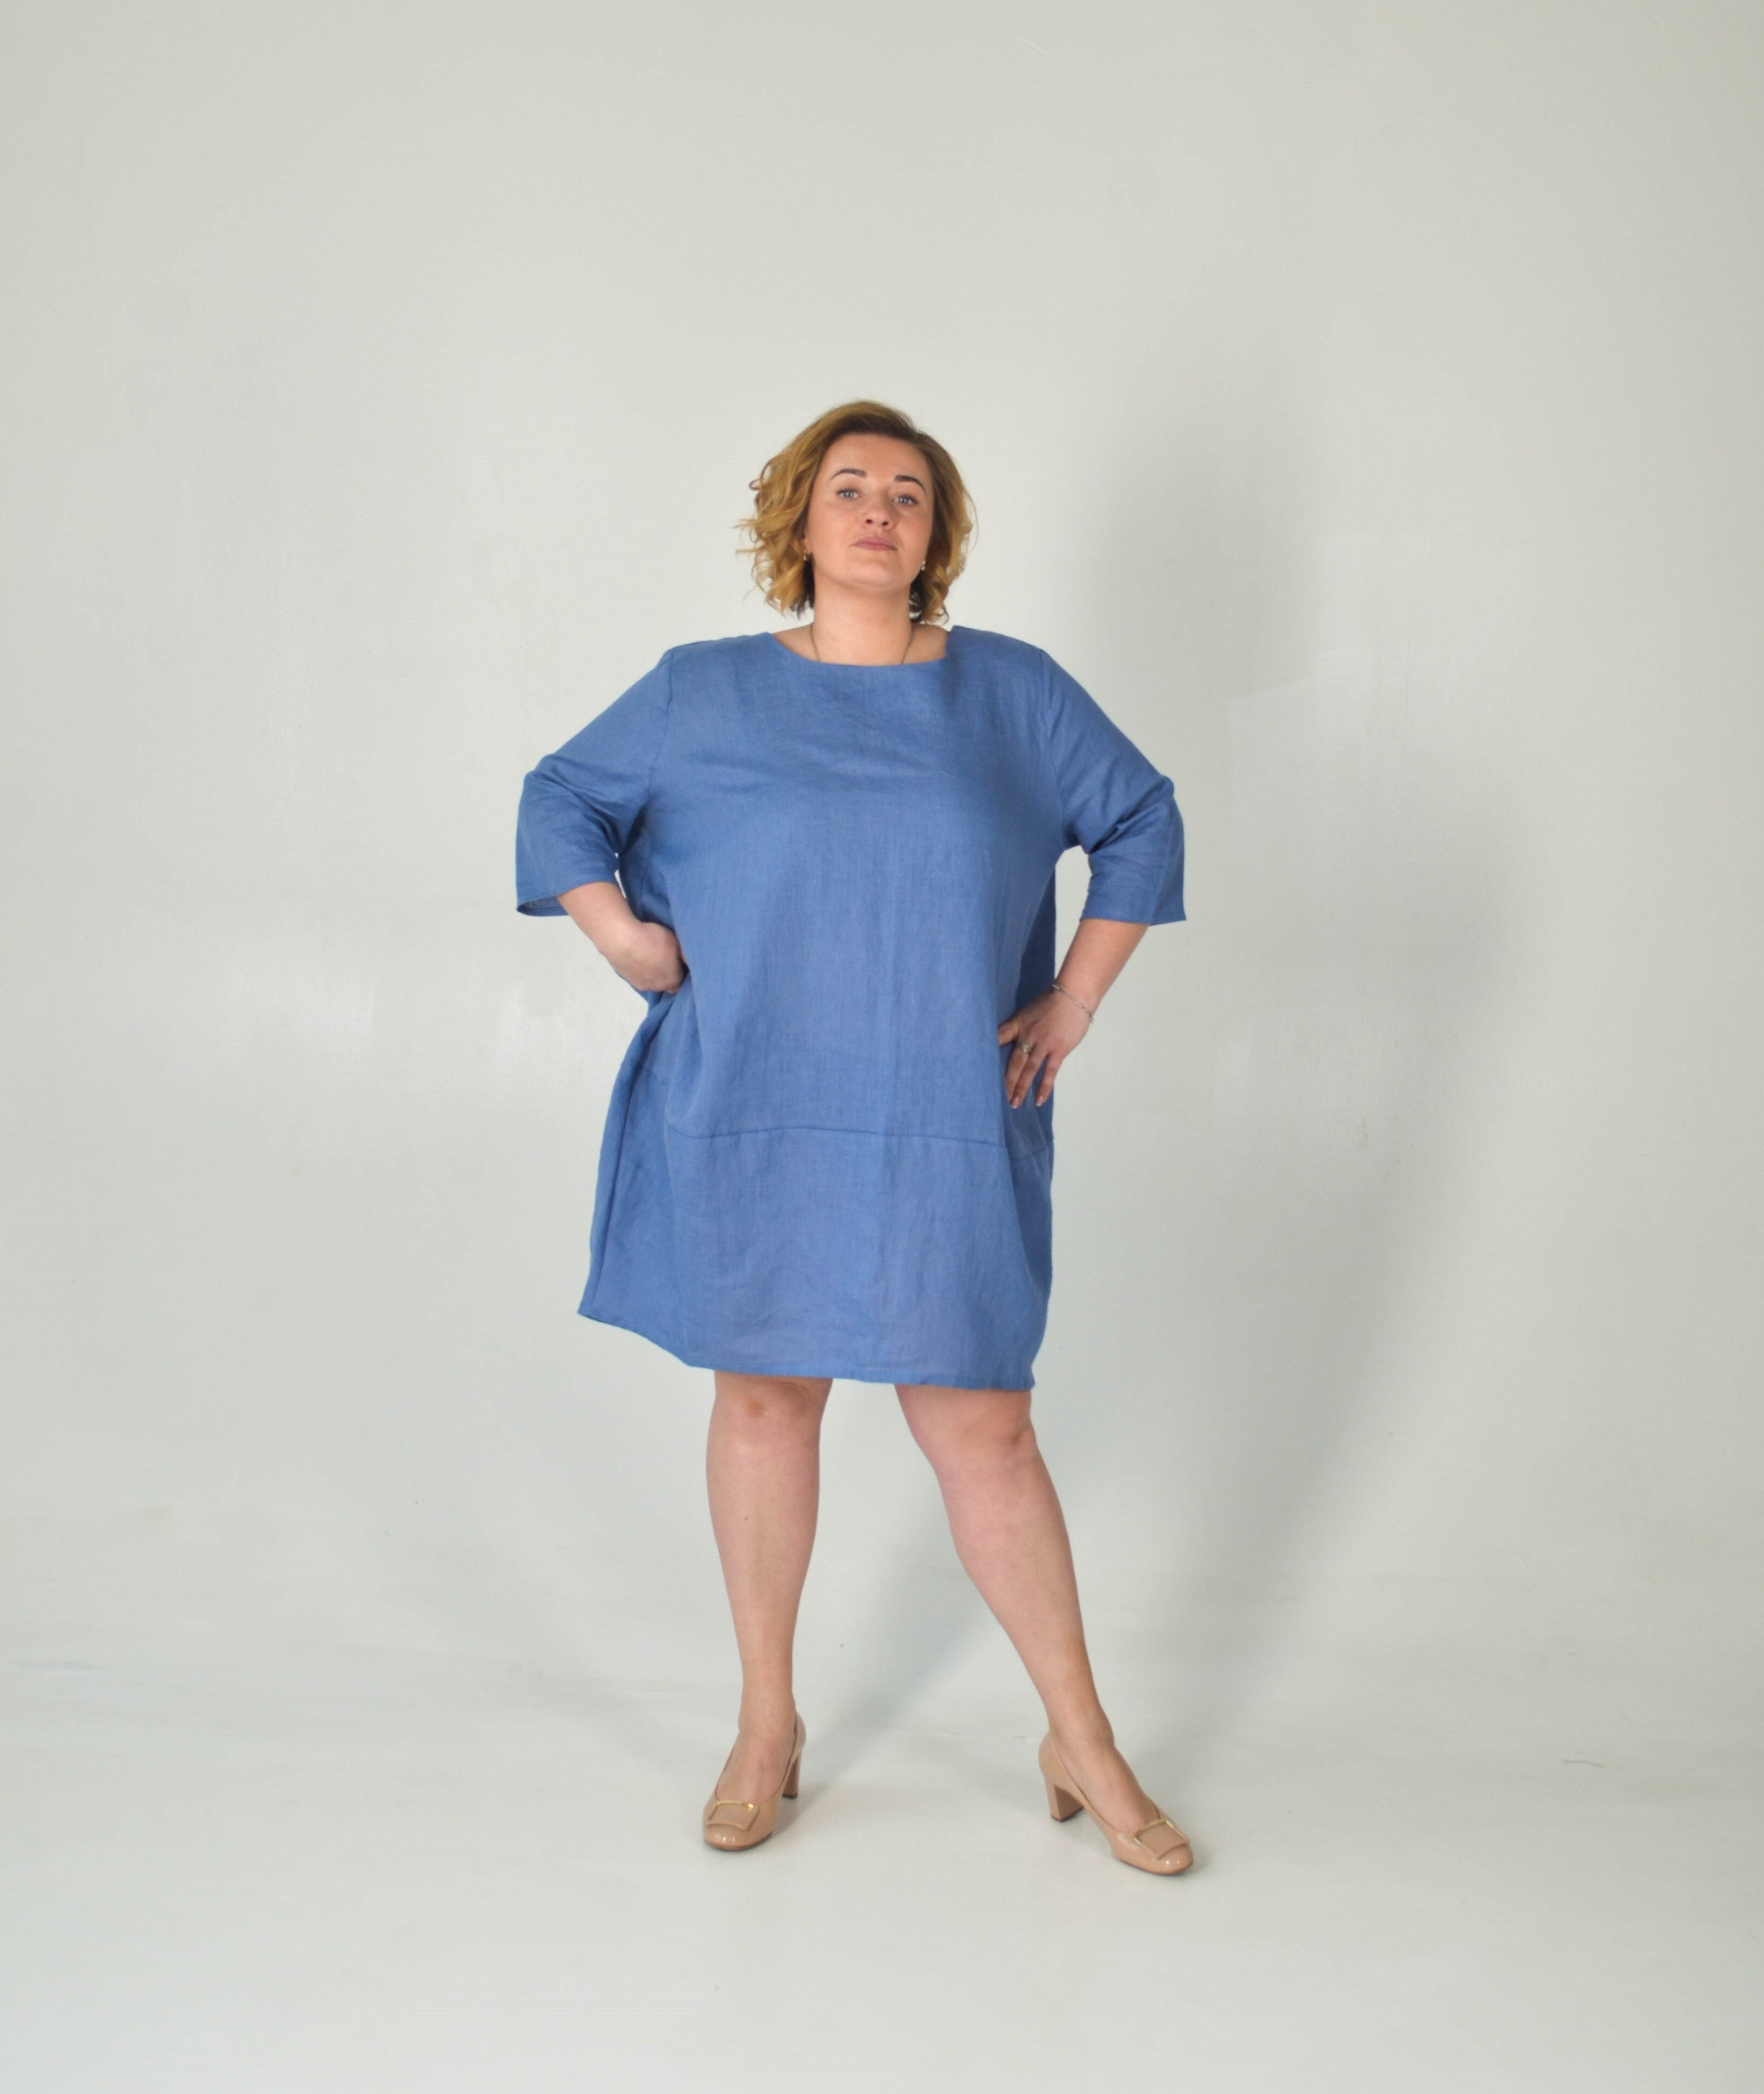 Plus Size Oversized Linen Summer Tunic - Baloon Dress Women - Blue Summer Outfit - XL-3XL